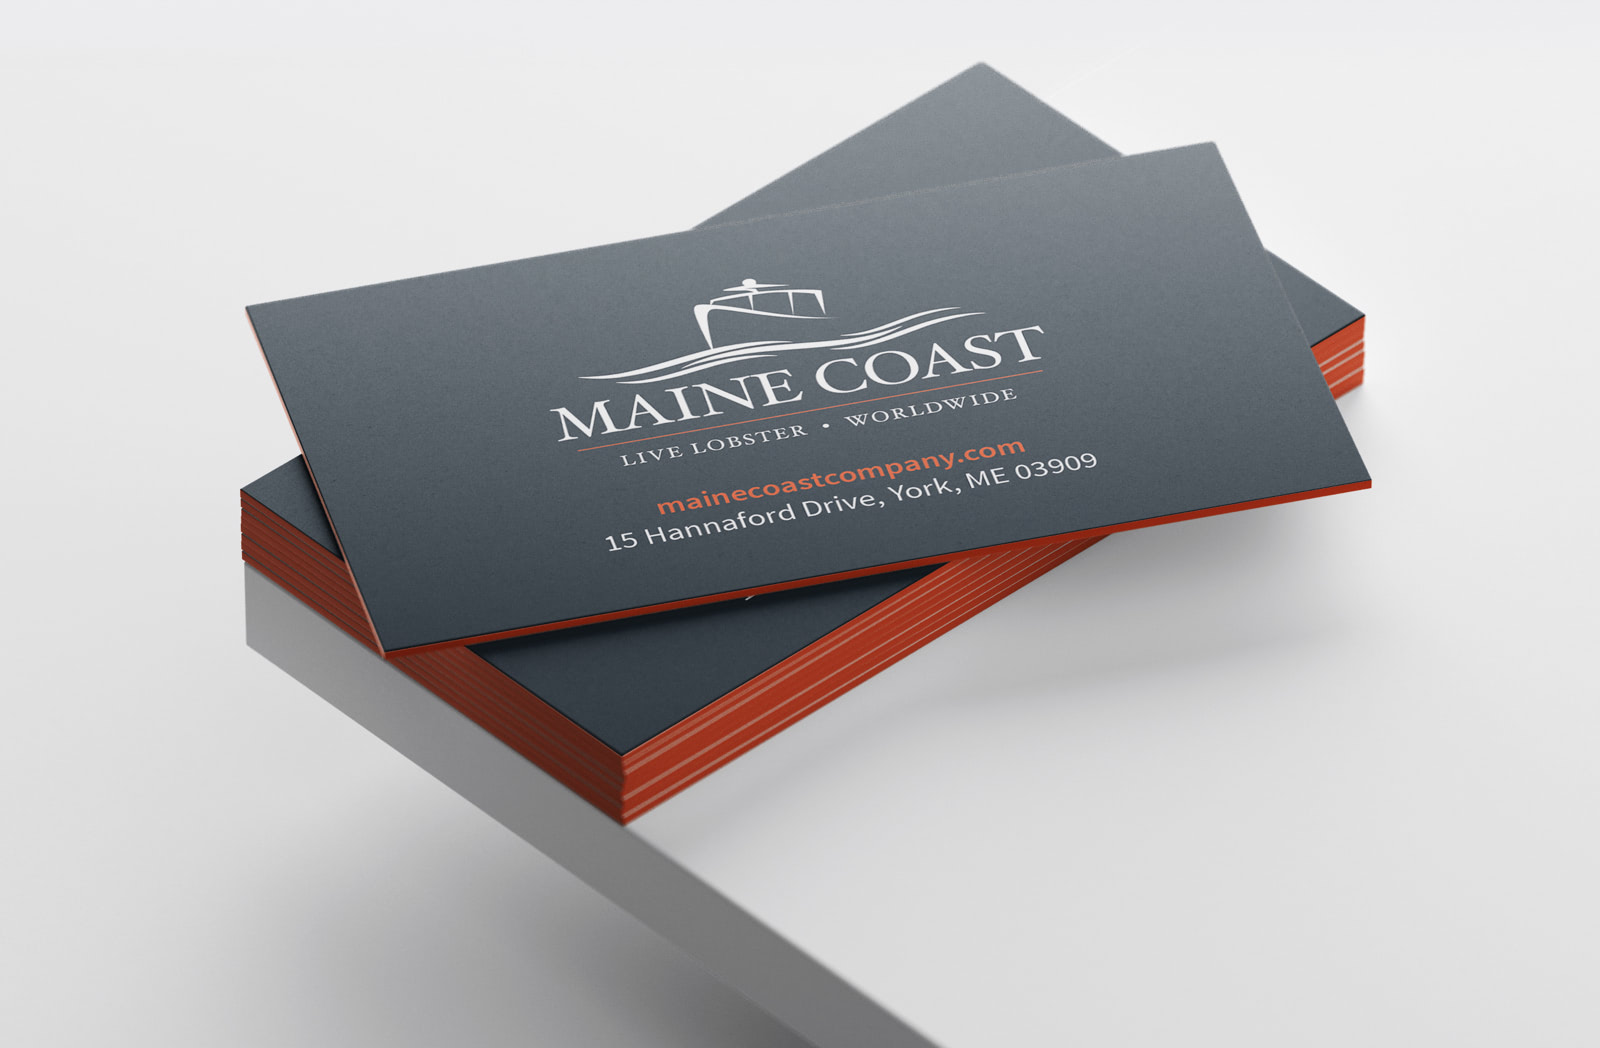 Mockup of a stack of Maine Coast business cards with their logo, website and address on the front and thick, orange painted edges.